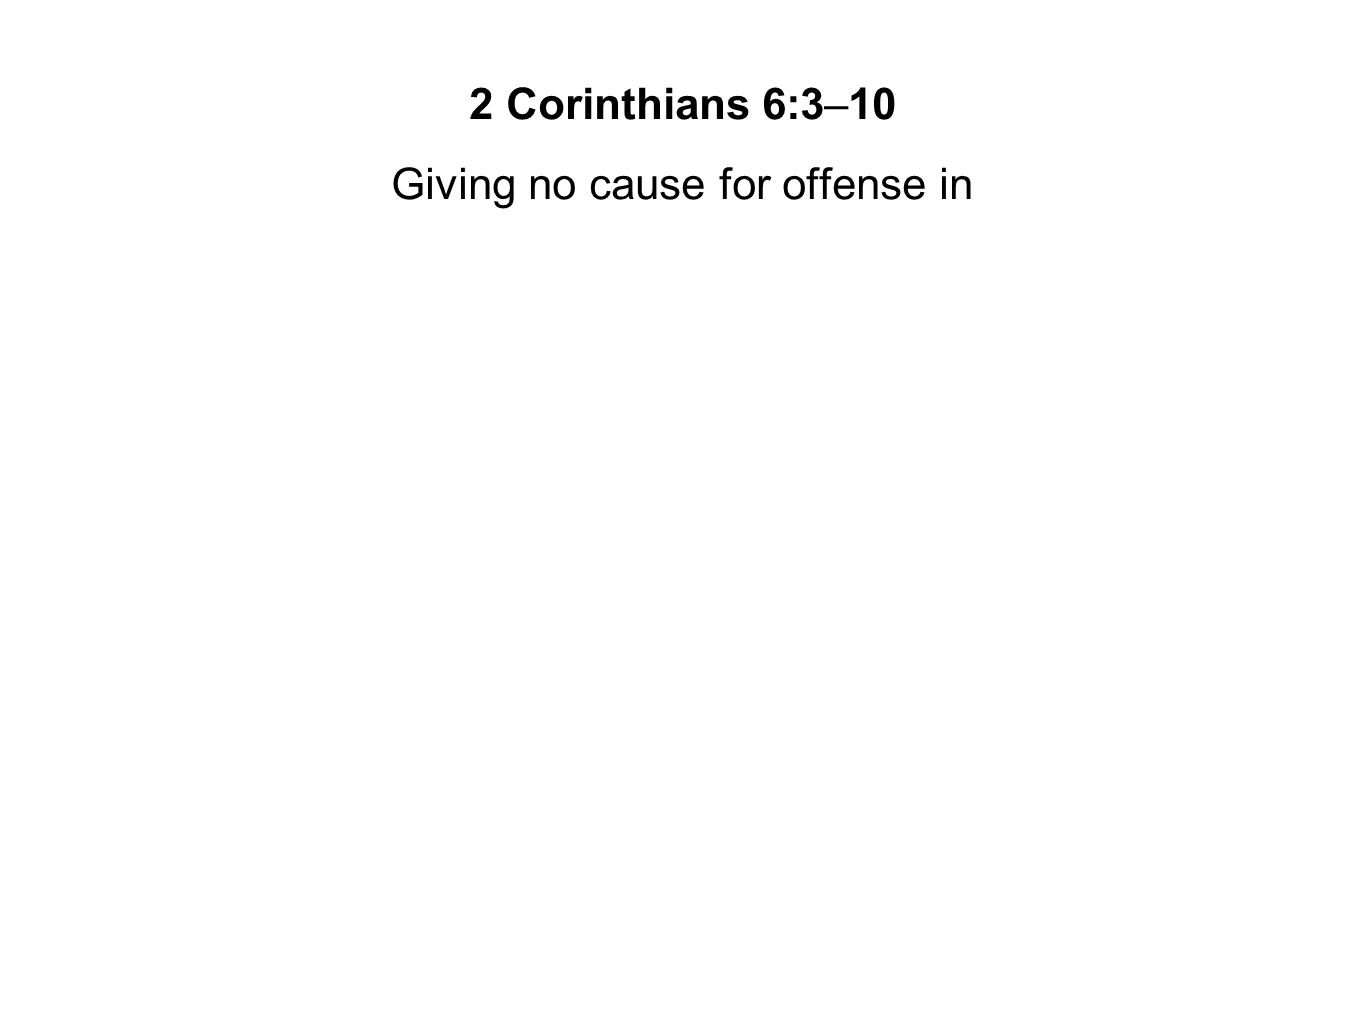 Giving no cause for offense in